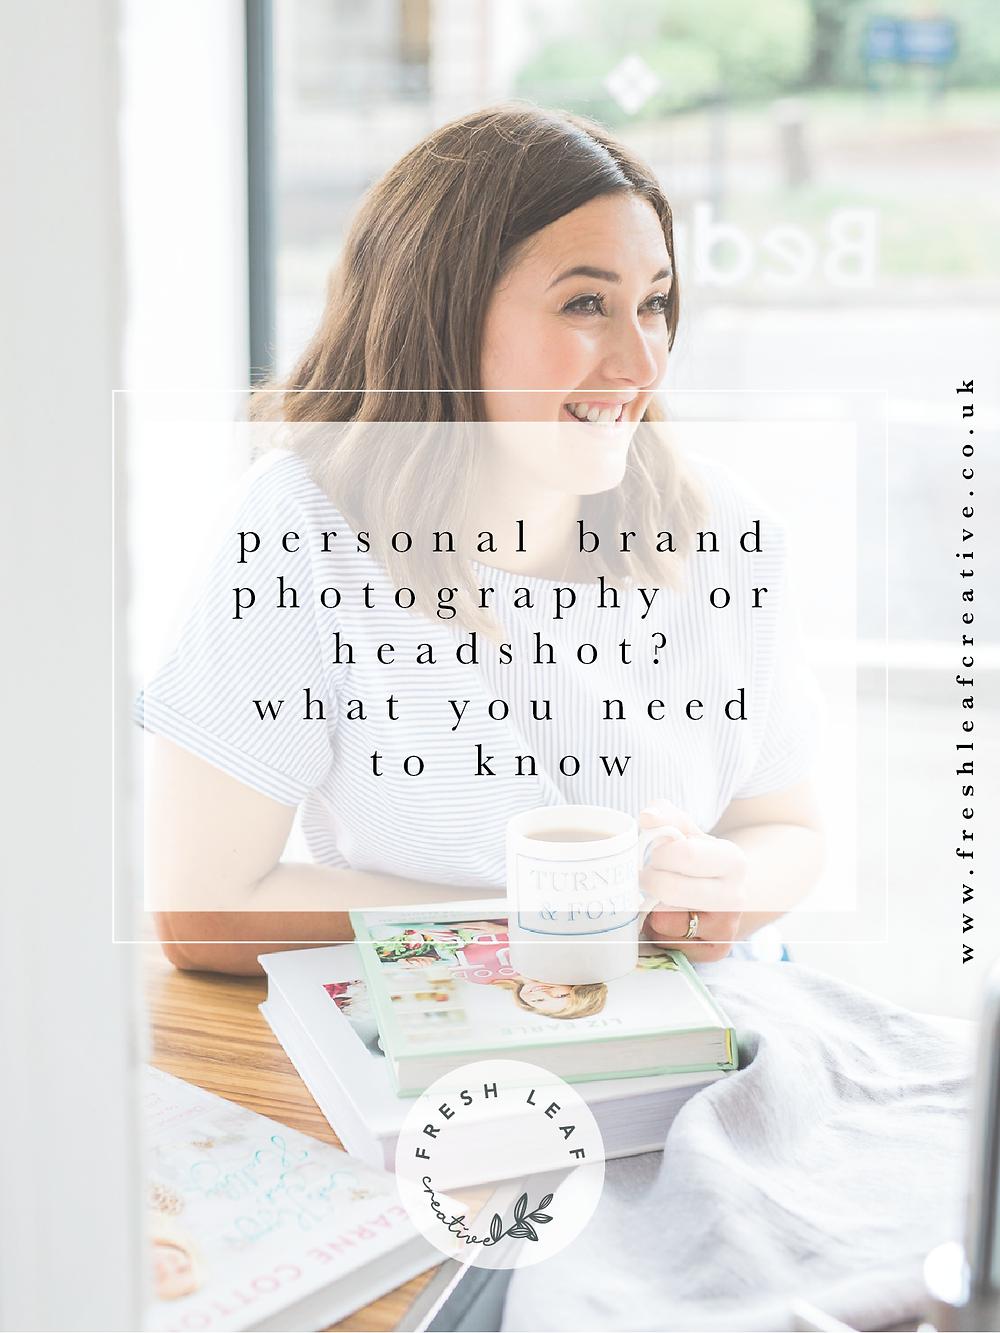 Business headshoot or personal brand photography shoot - which do you need? | Fresh Leaf Creative | Personal Brand Photographer Surrey